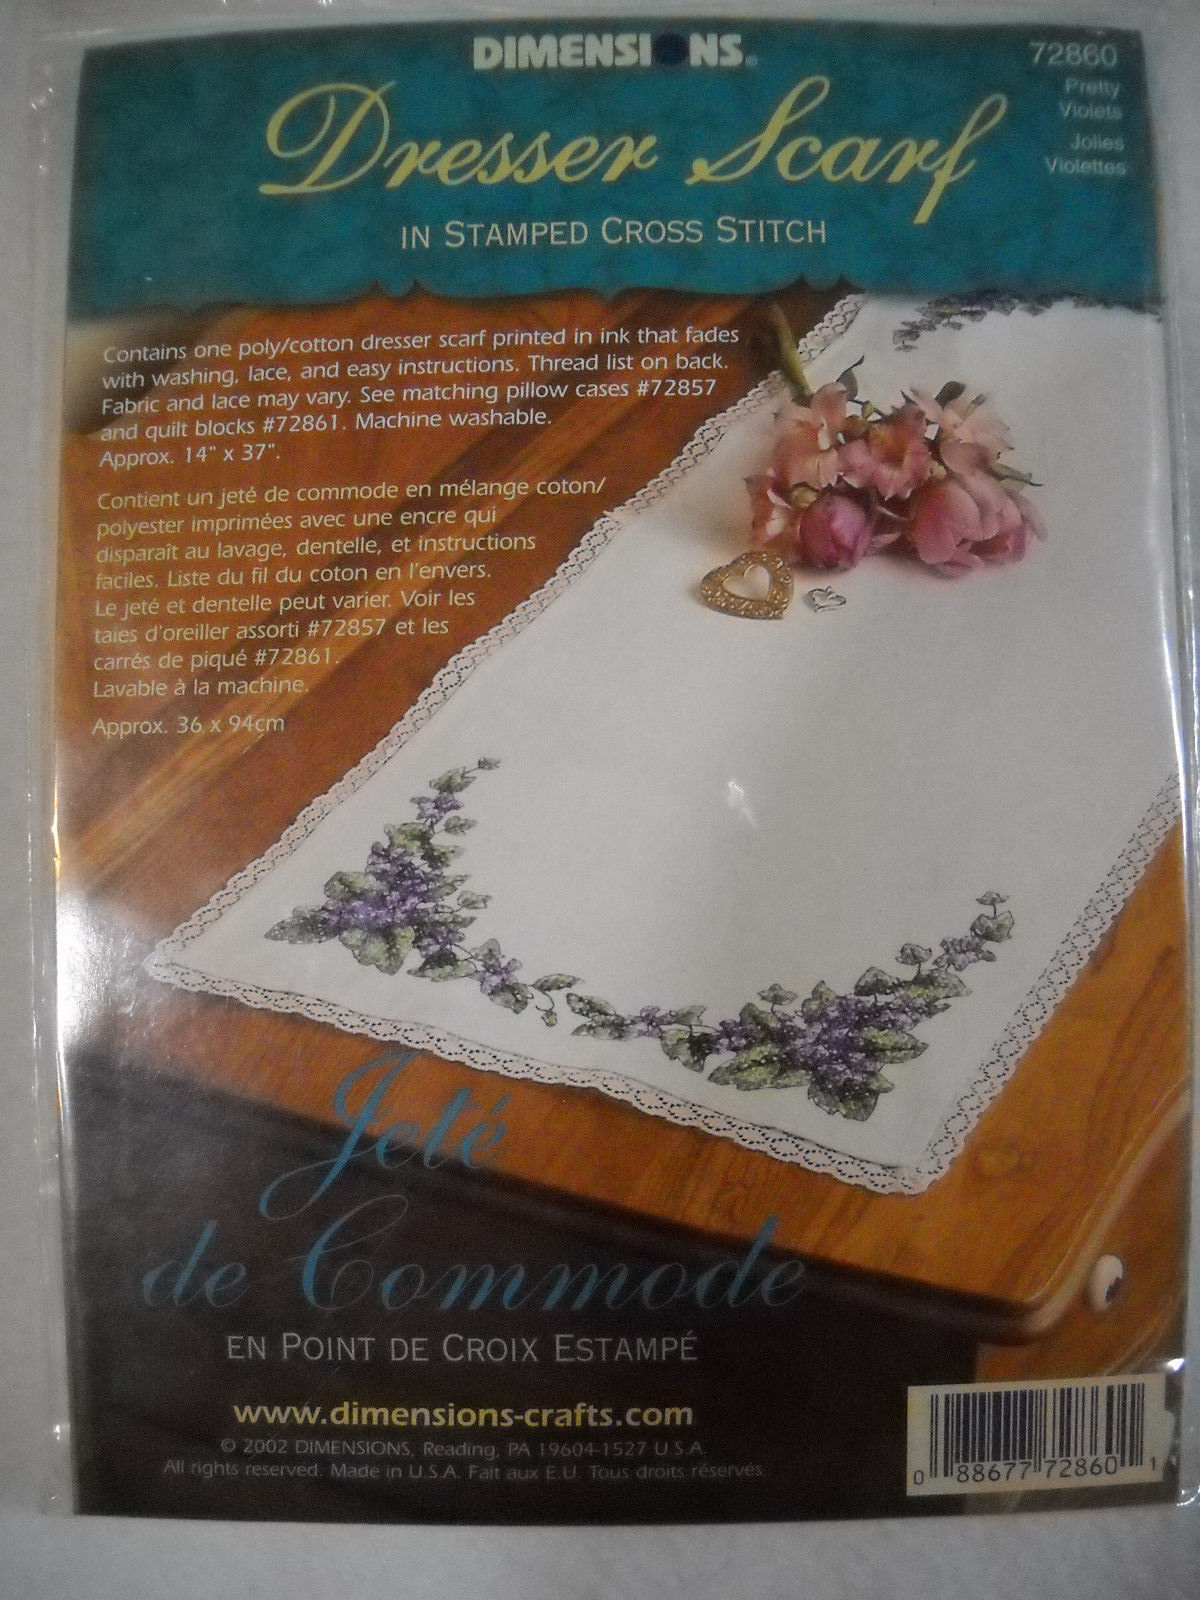 Pretty Violets Dresser Scarf Pannel Stamped for Cross Stitch Dimensions 72860